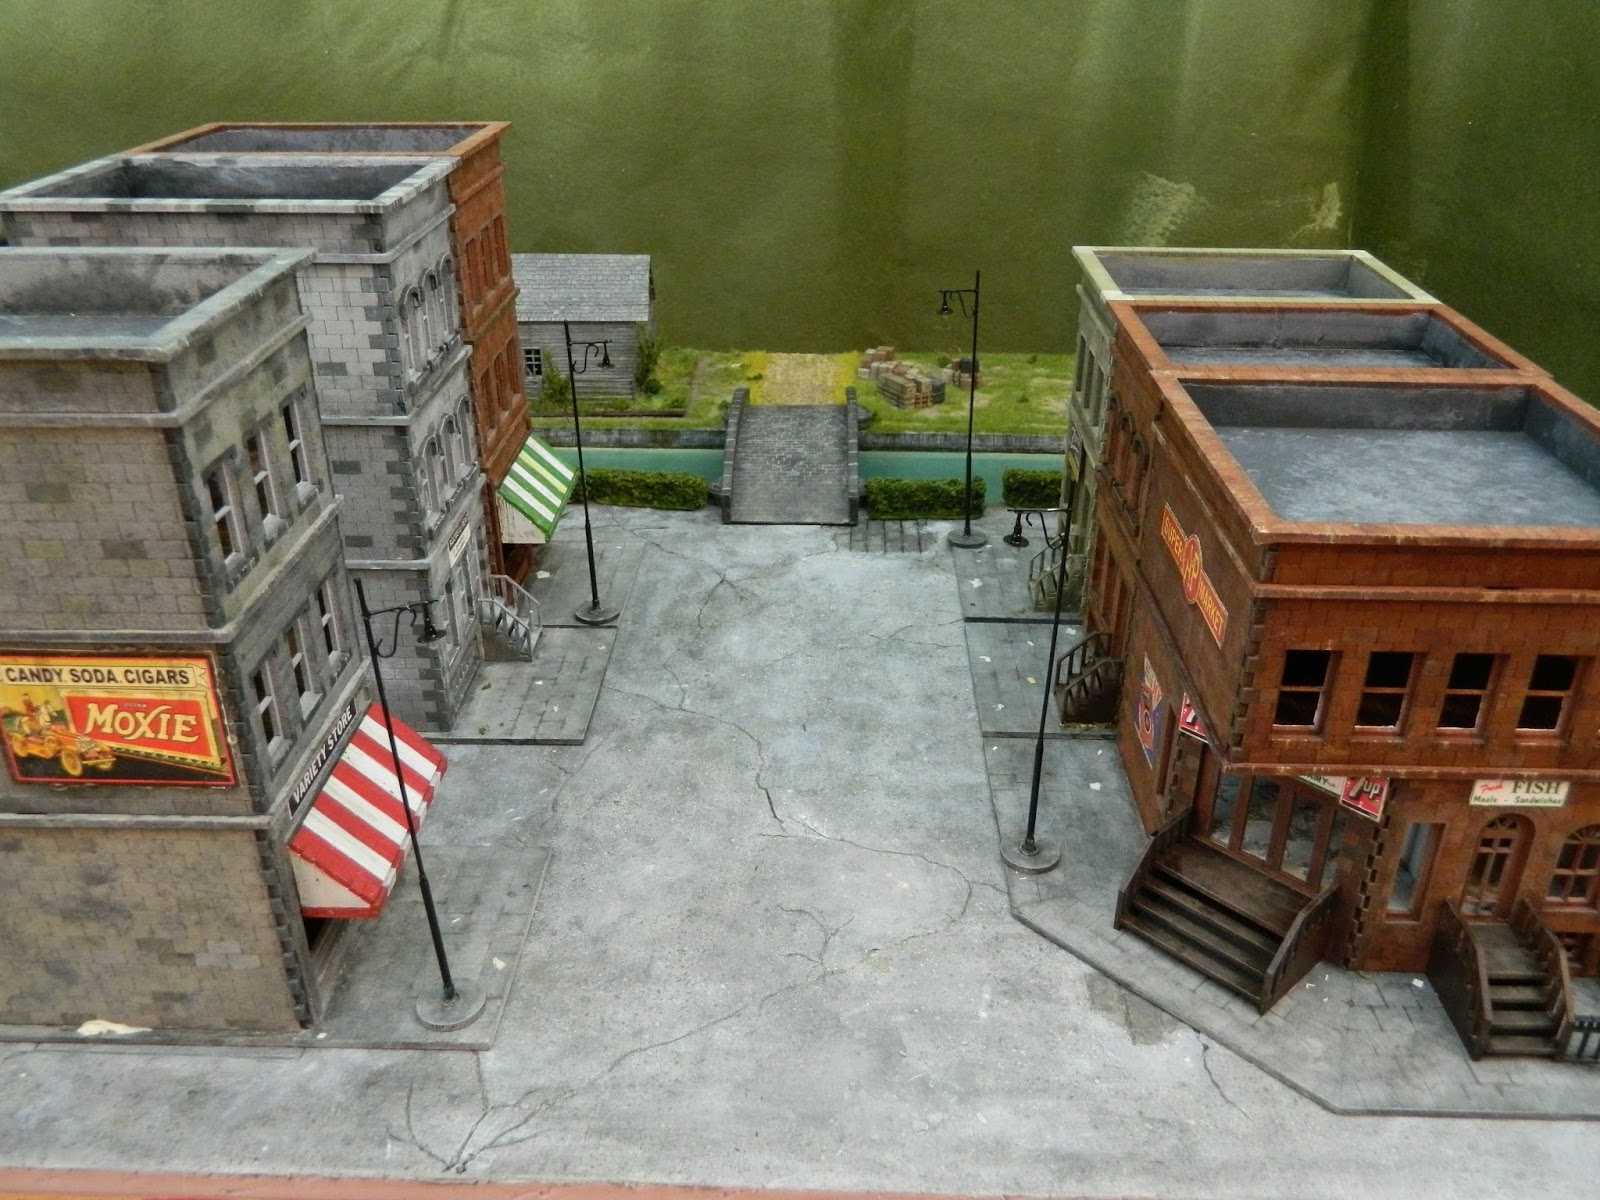 Not exactly Mordheim terrain - Page 3 Pulp%2BAlley%2BTable%2BFeb%2B8th%2B006